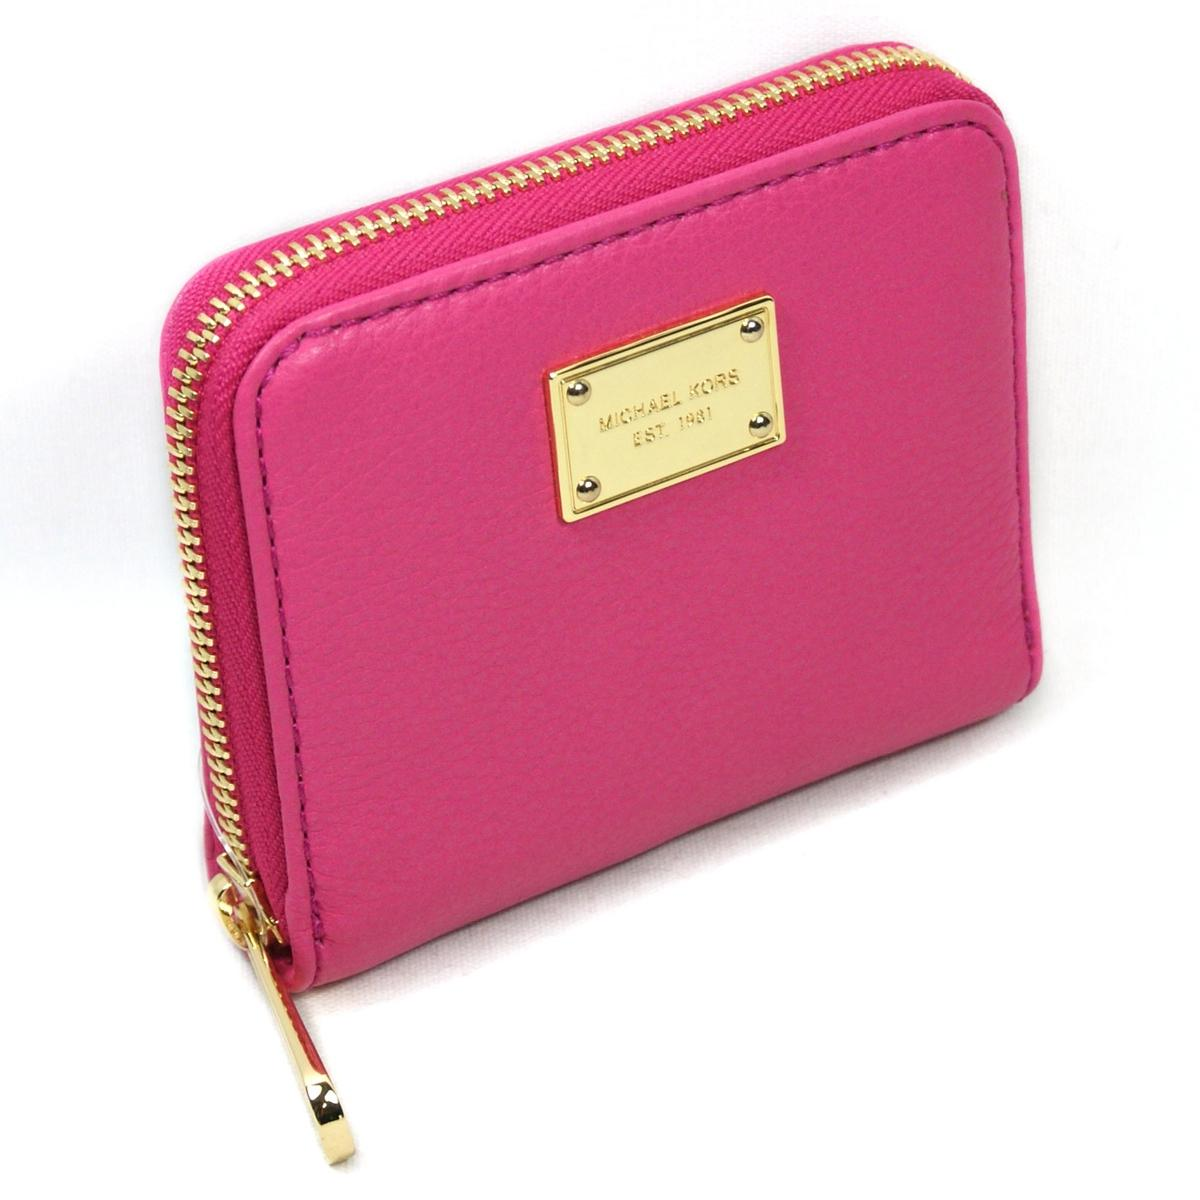 91e989788768bd Home · Michael Kors · Jet Set Genuine Leather Small Zip Around Wallet Zinnia.  CLICK THUMBNAIL TO ZOOM. Found ...